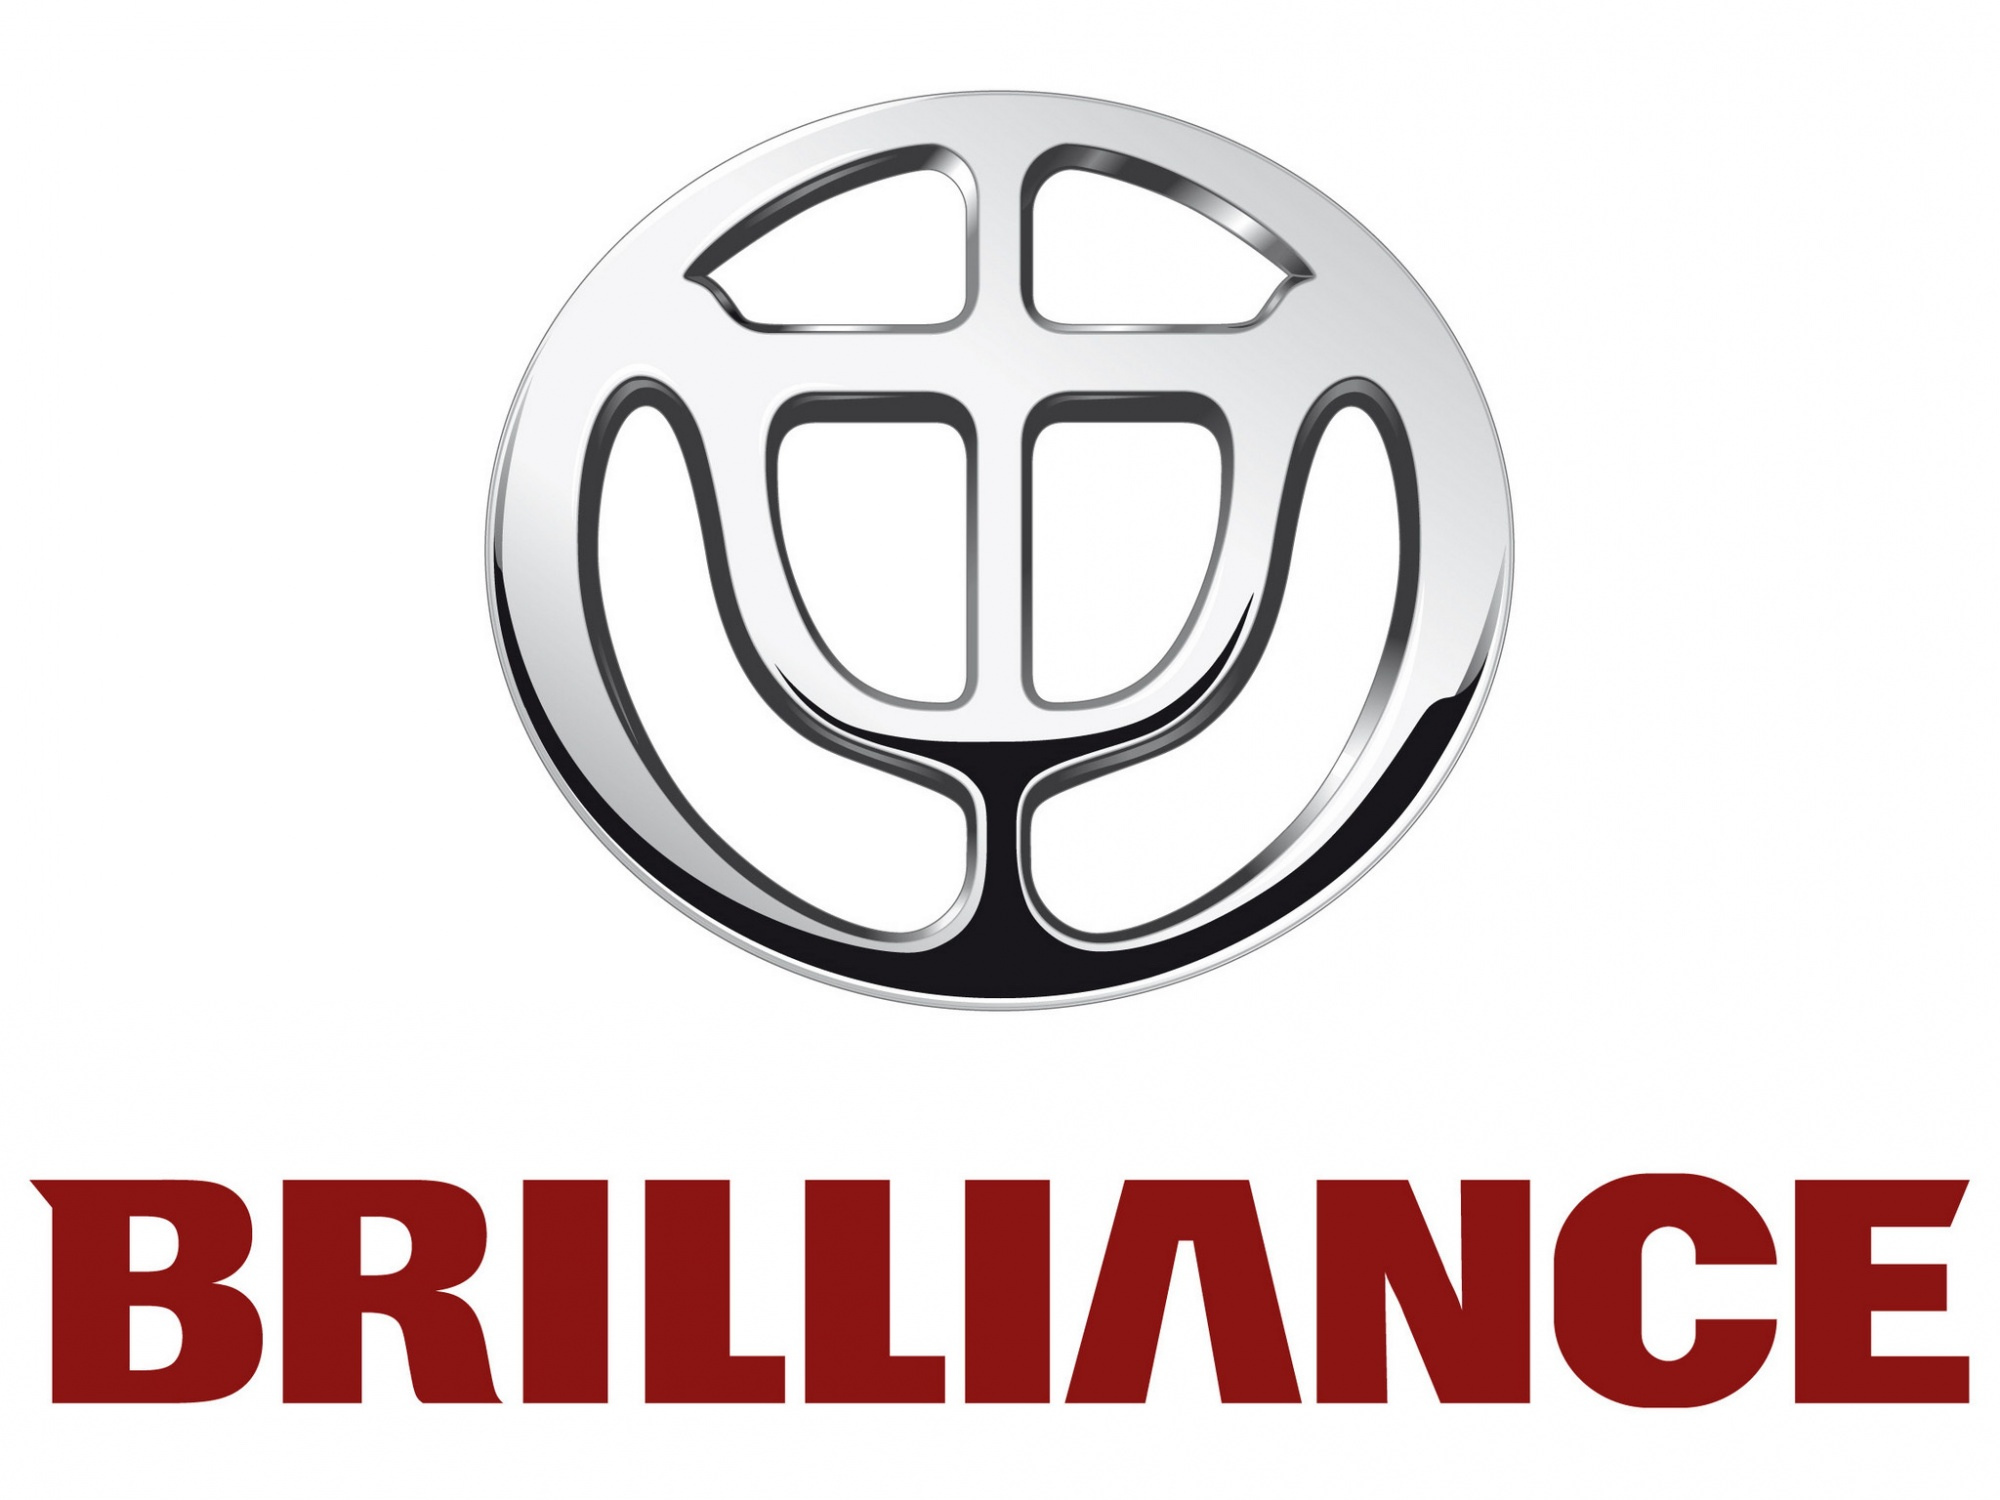 Фильтра Brilliance V5 для 2011 -